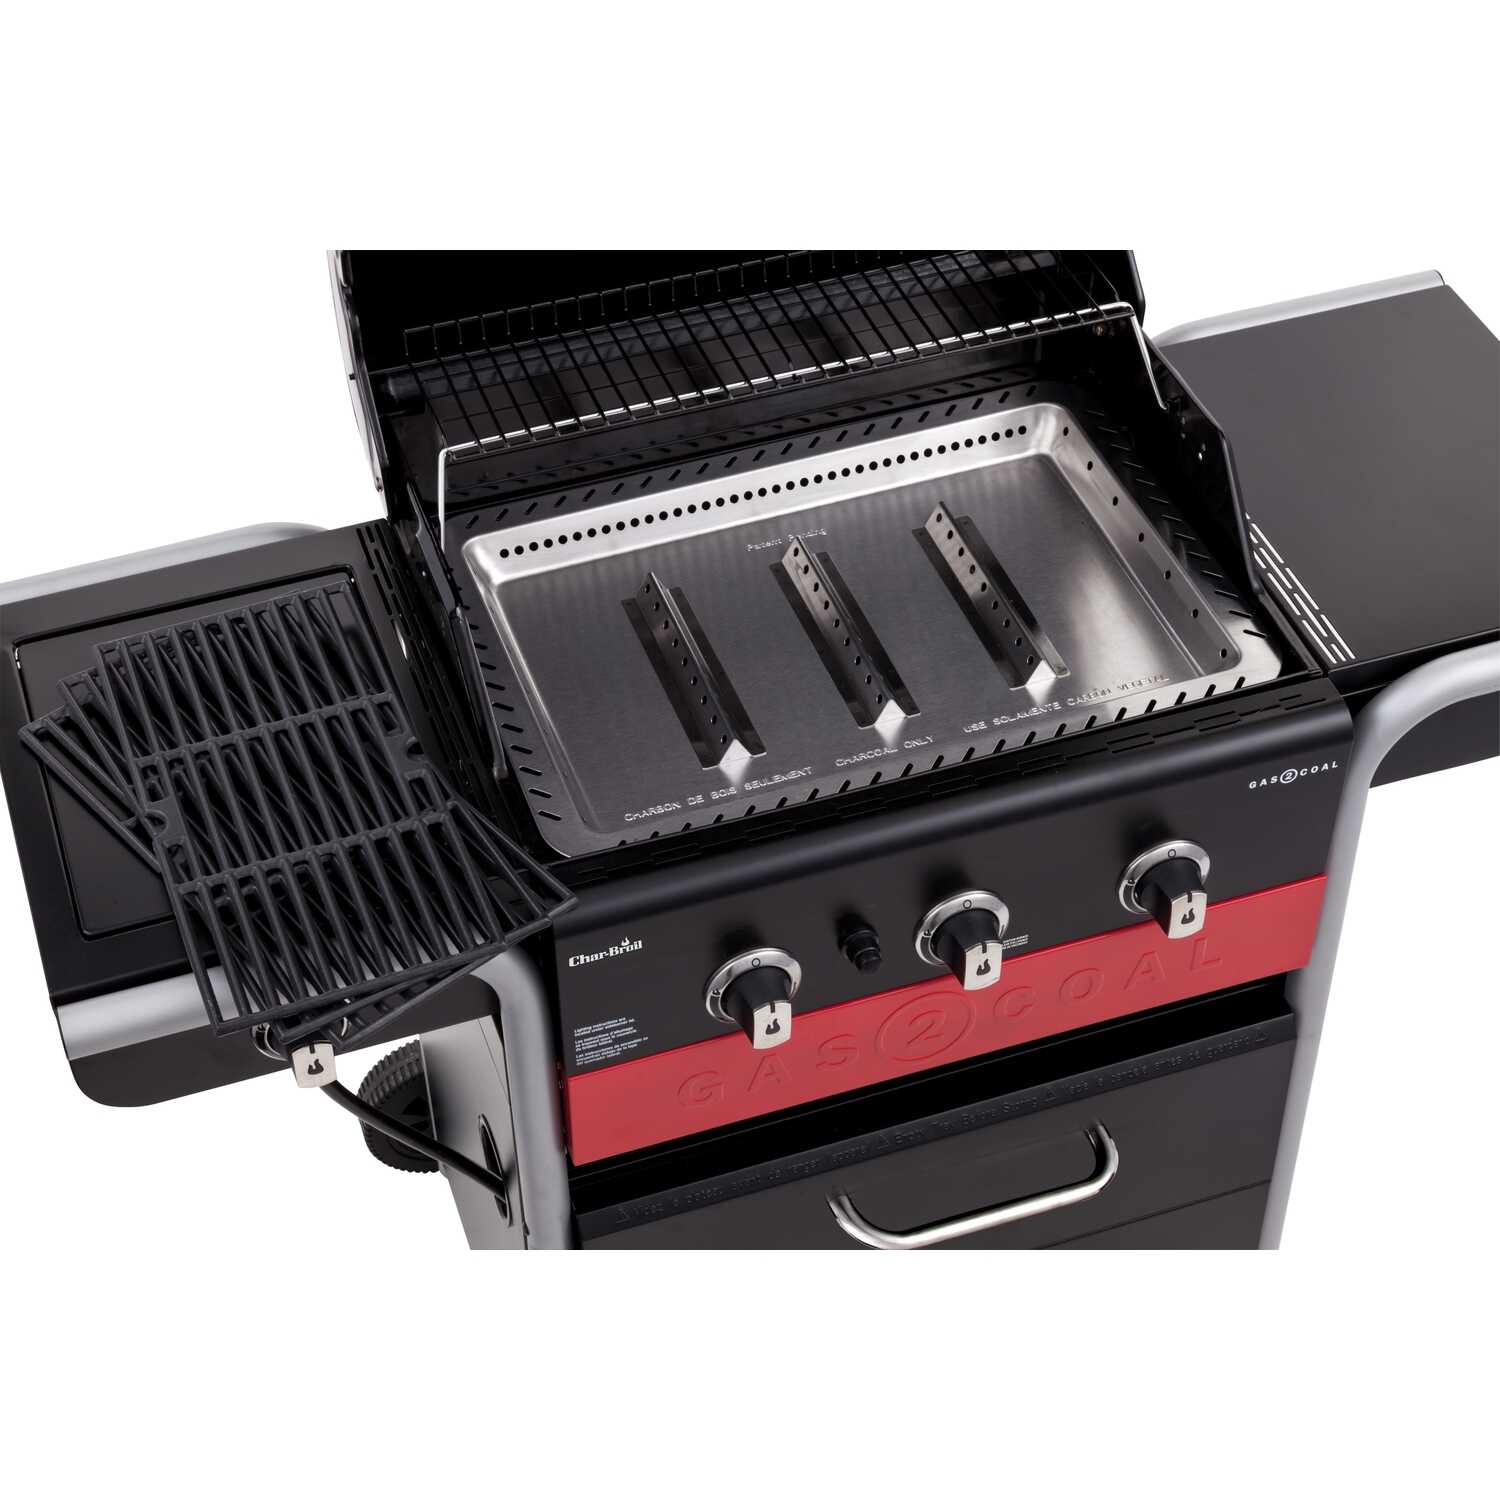 Char-Broil  Gas2Coal  Multi-Fuel  Freestanding  3 burners Black  Grill